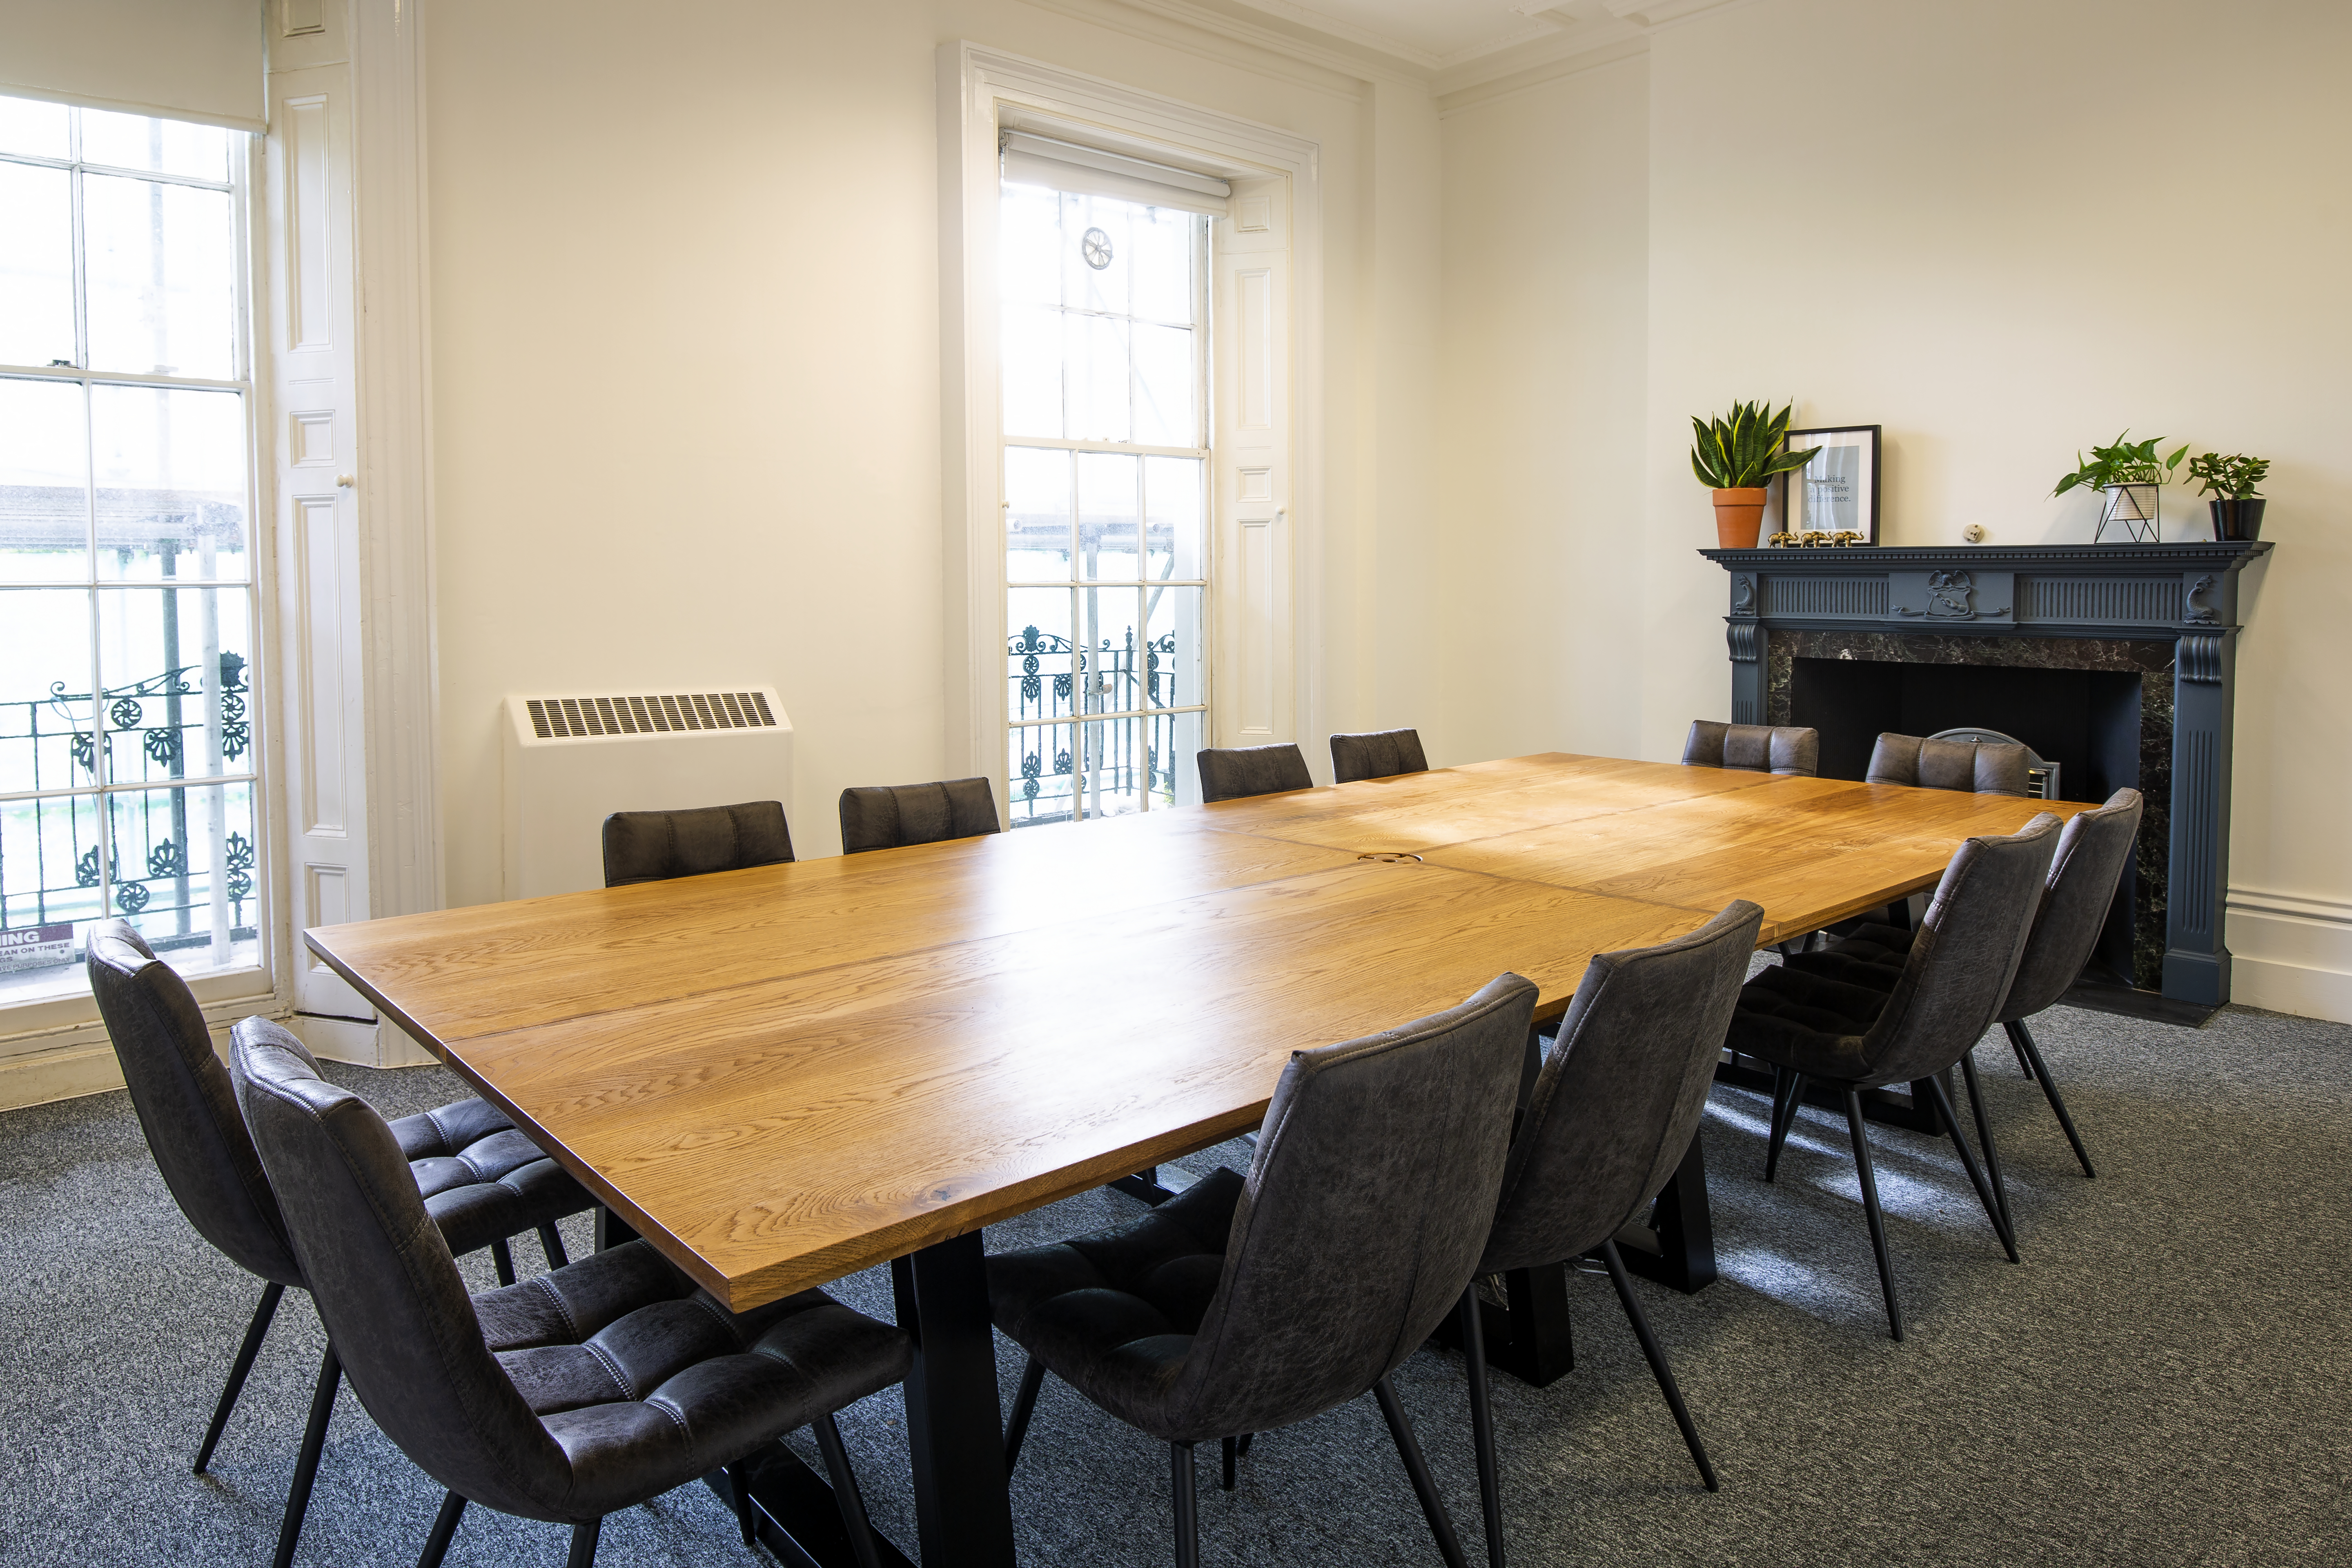 44Communications Conference table